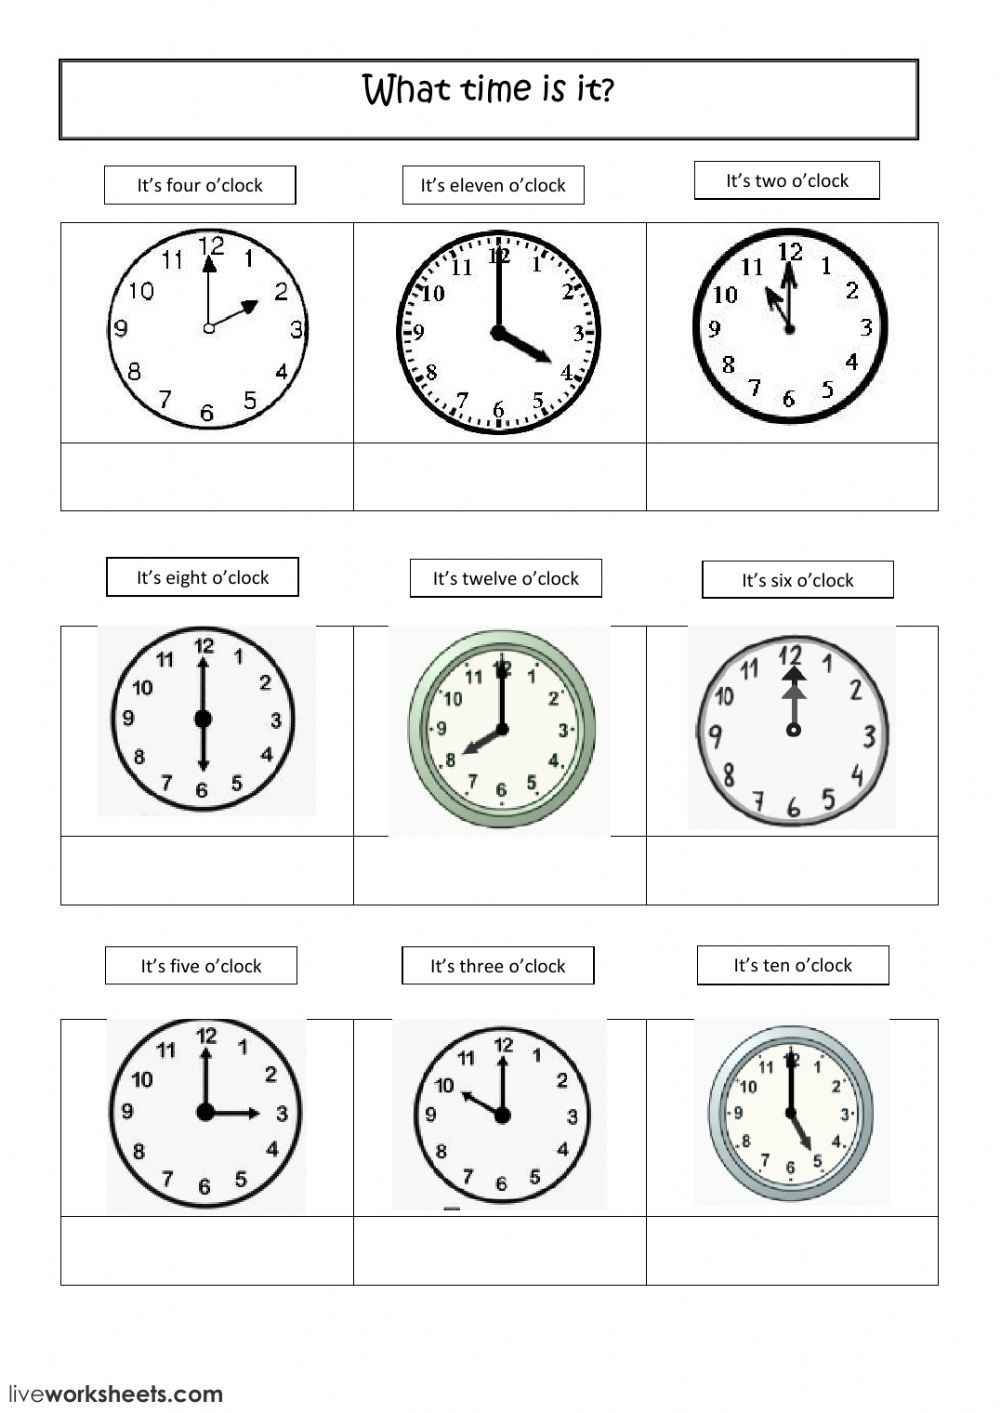 Telling the time online exercise. You can do the exercises